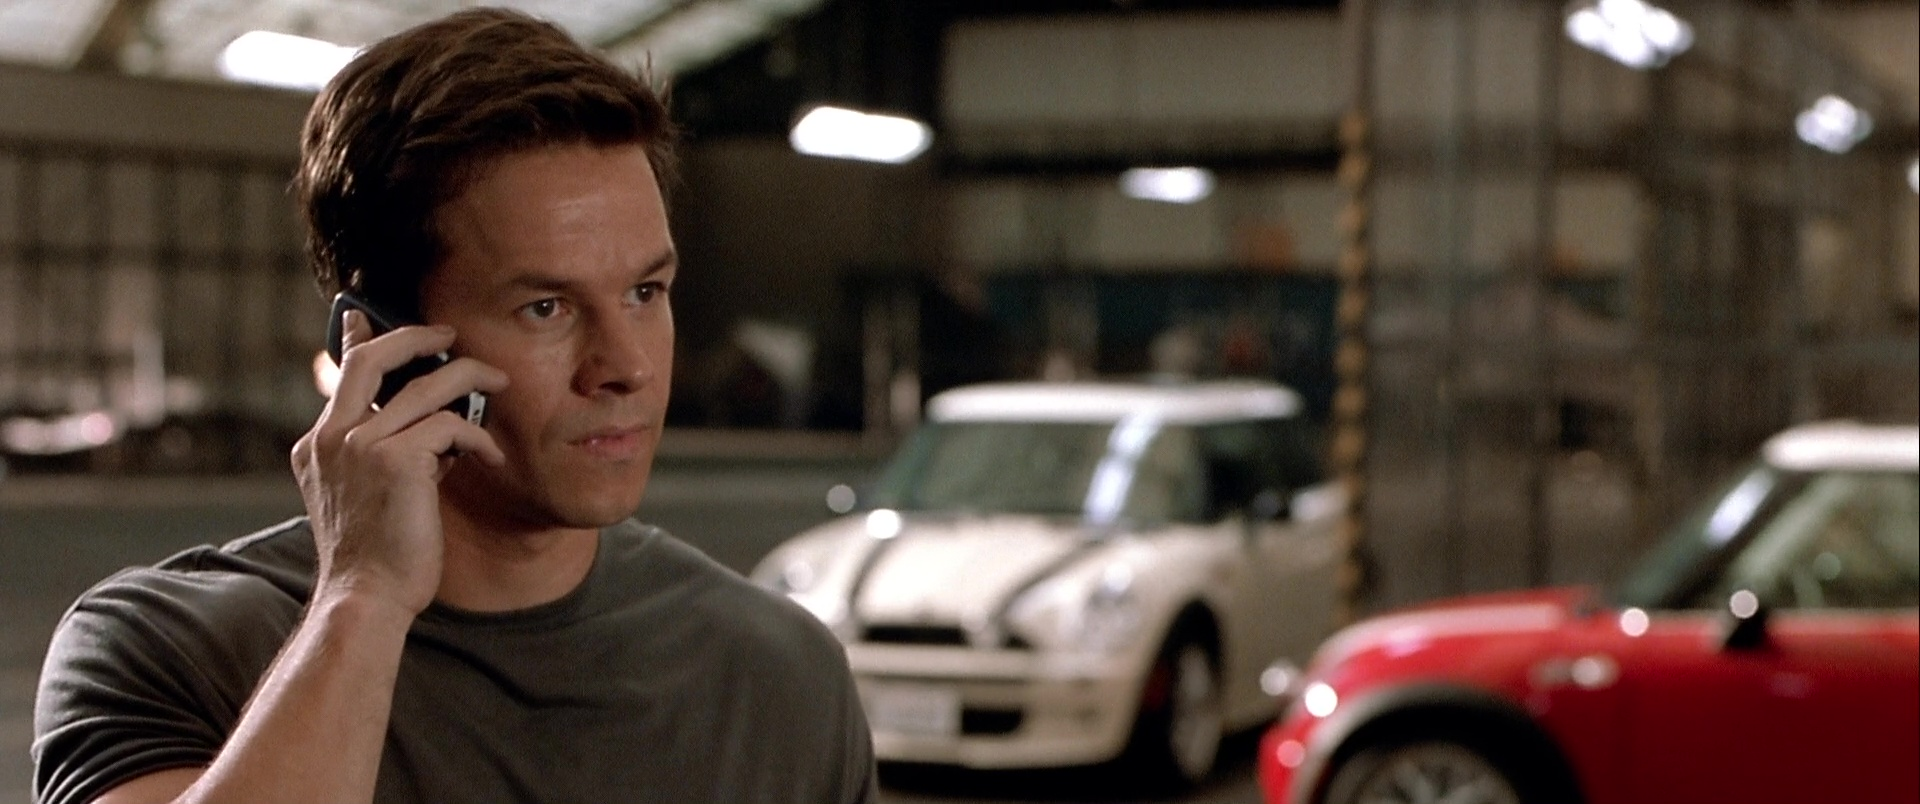 Video And Tv Cast For Samsung >> Nokia Phone Used by Mark Wahlberg in The Italian Job (2003 ...